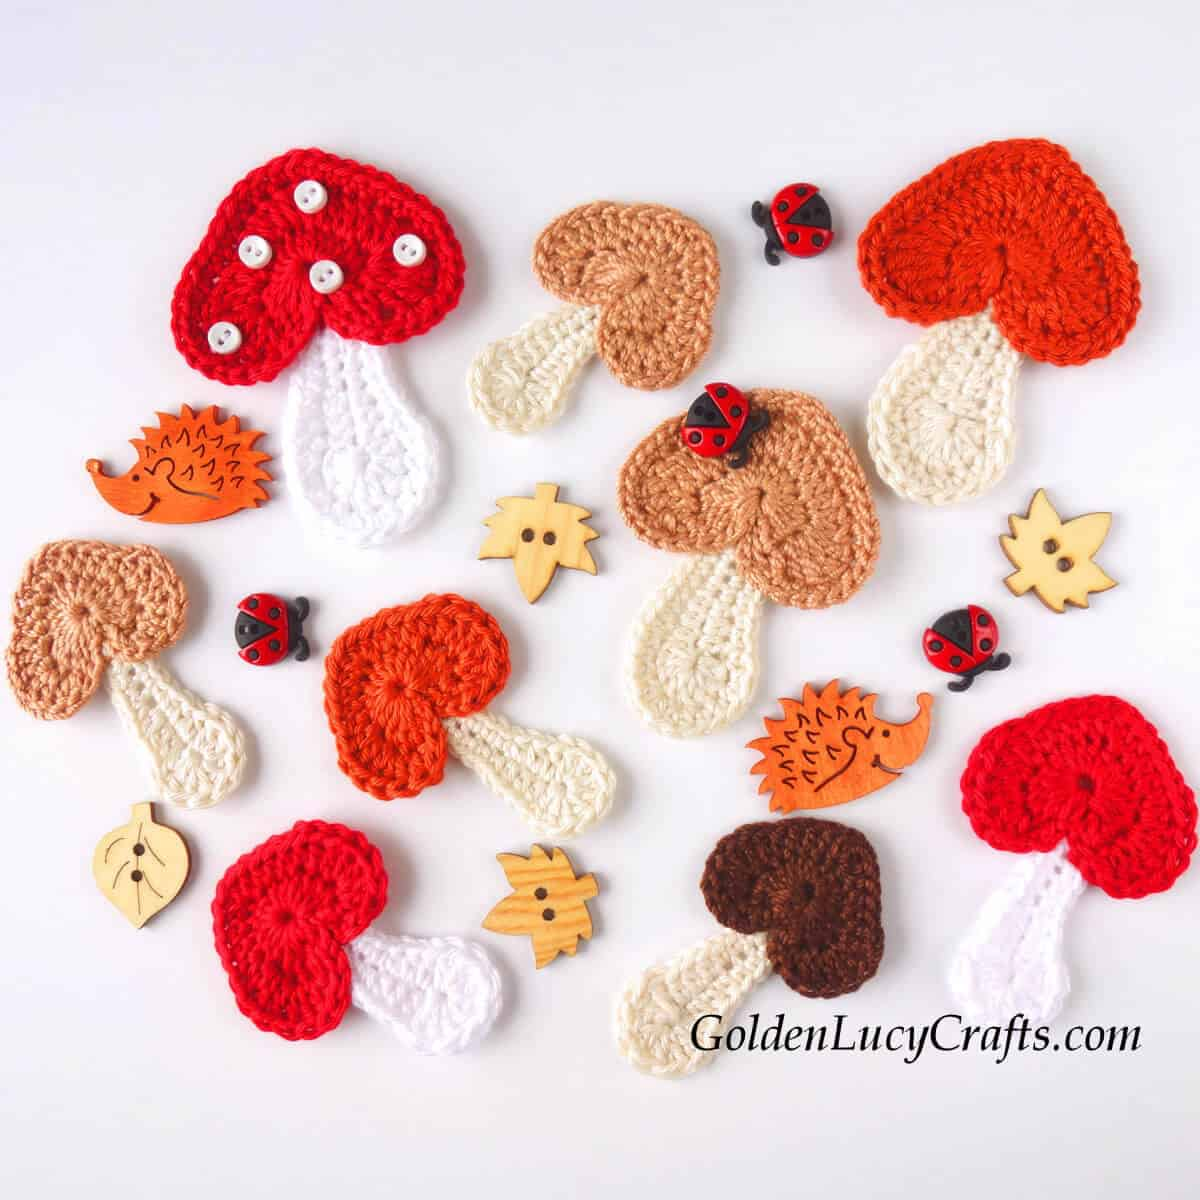 Crocheted mushroom appliques and craft buttons.